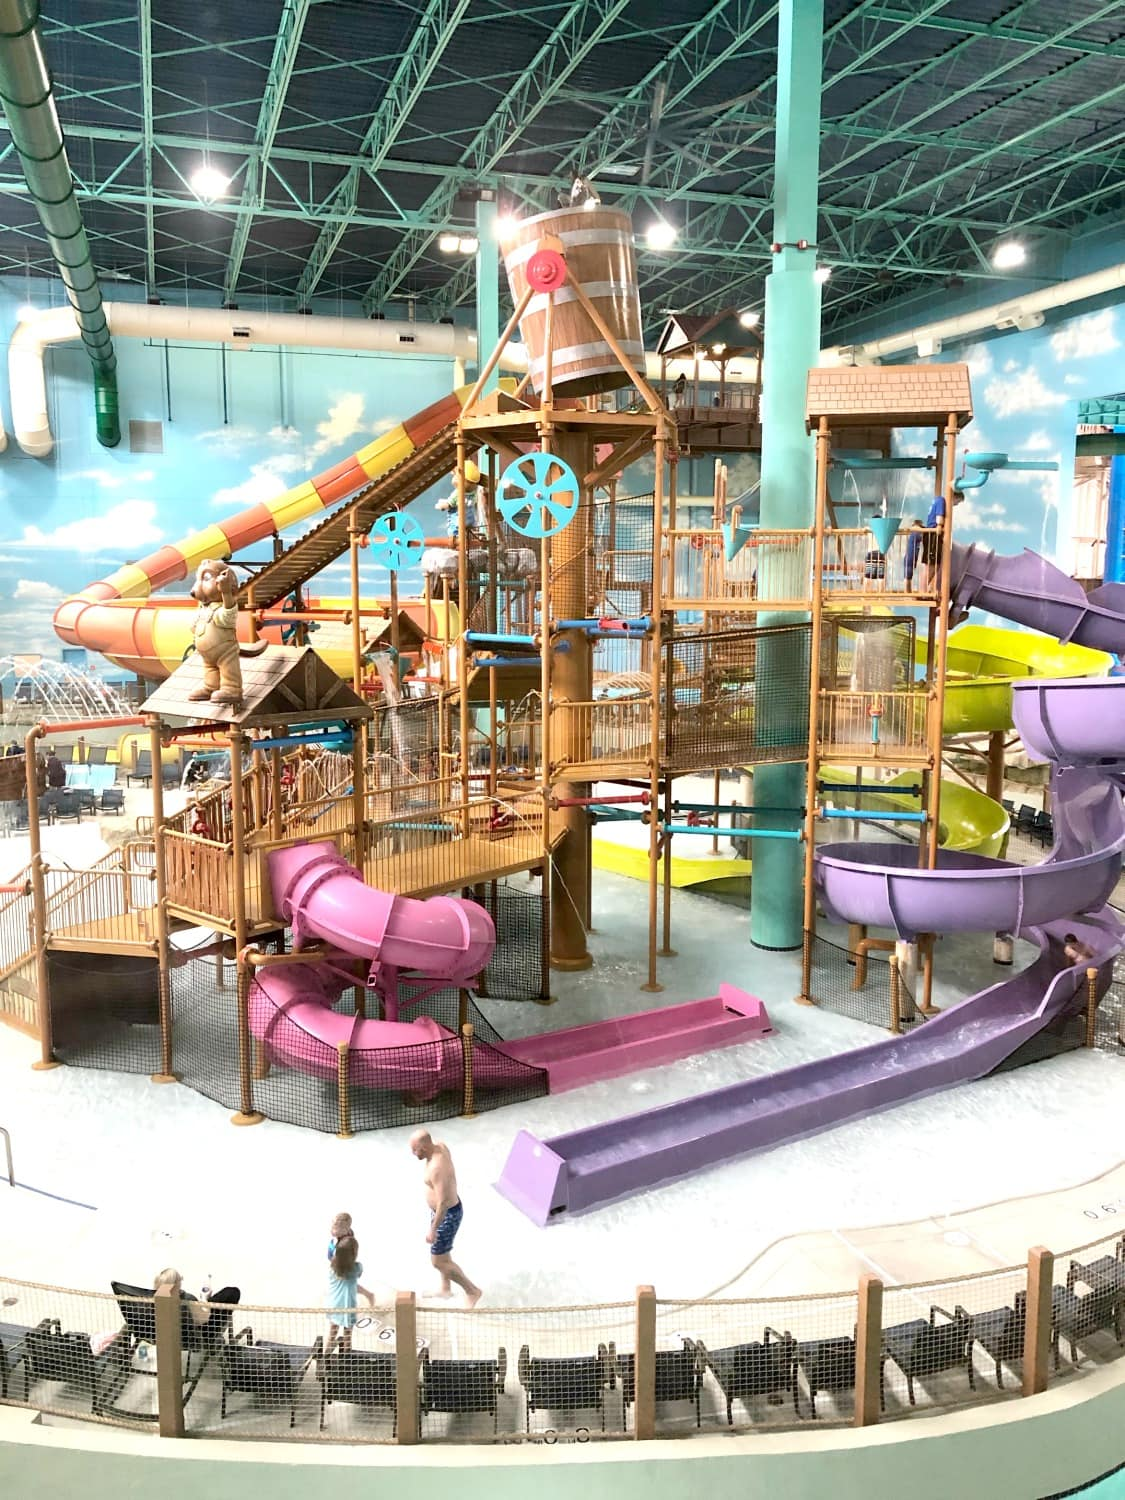 Indoor waterpark at great wolf lodge gurnee